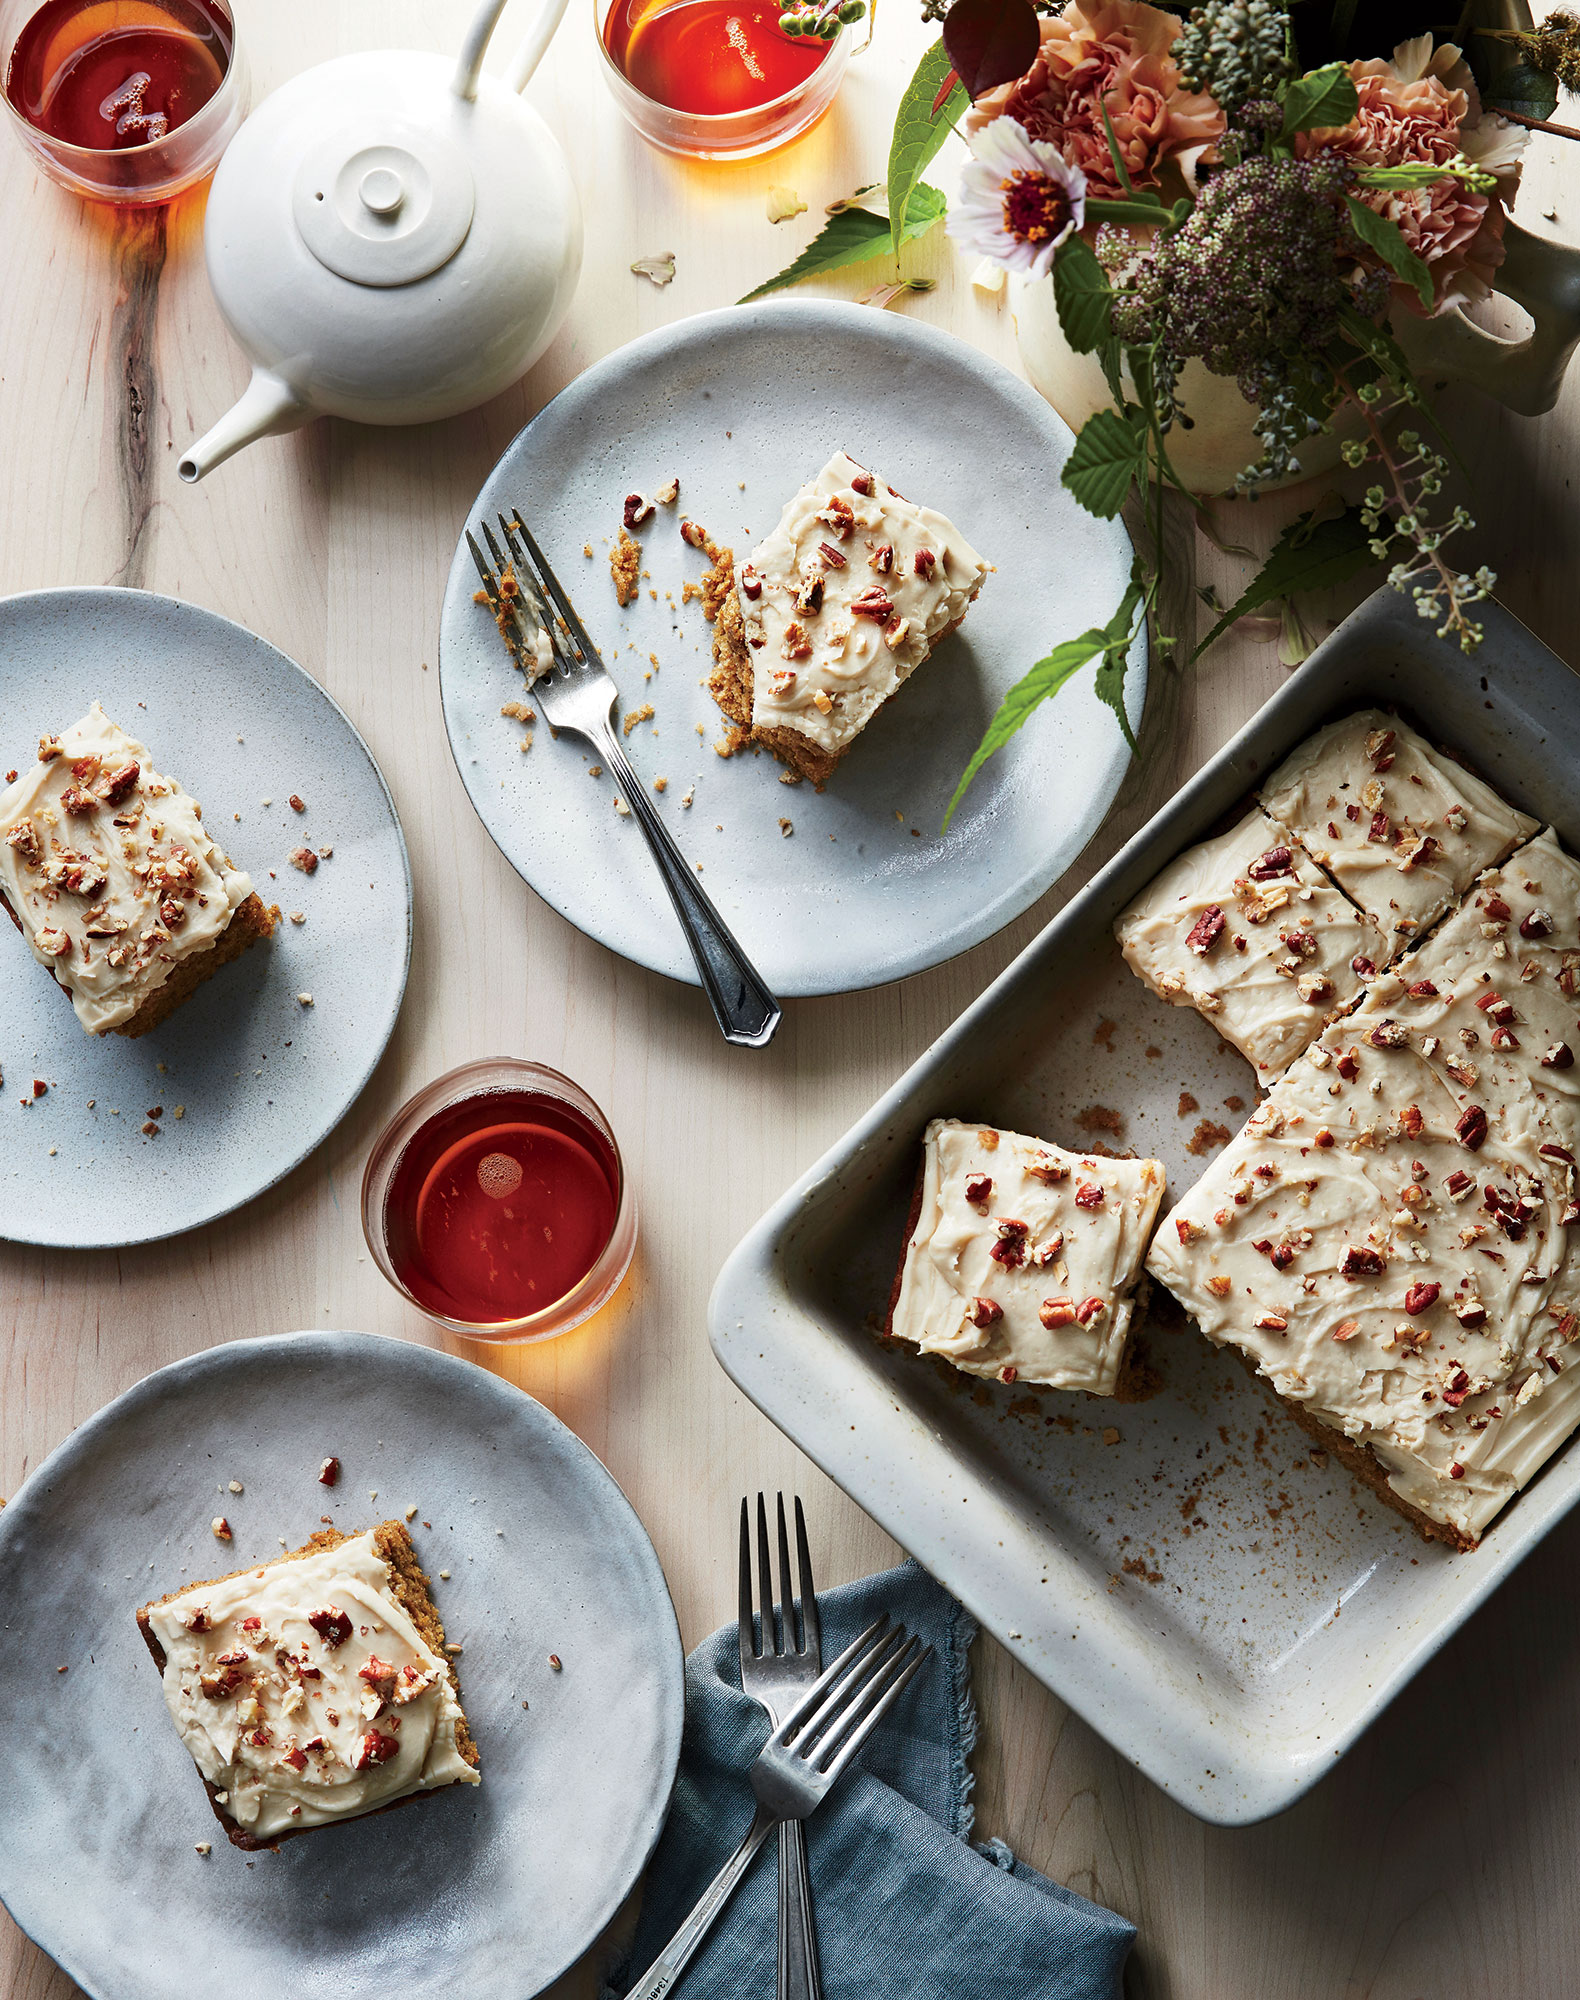 Parsnip Spice Cake with Caramel Icing